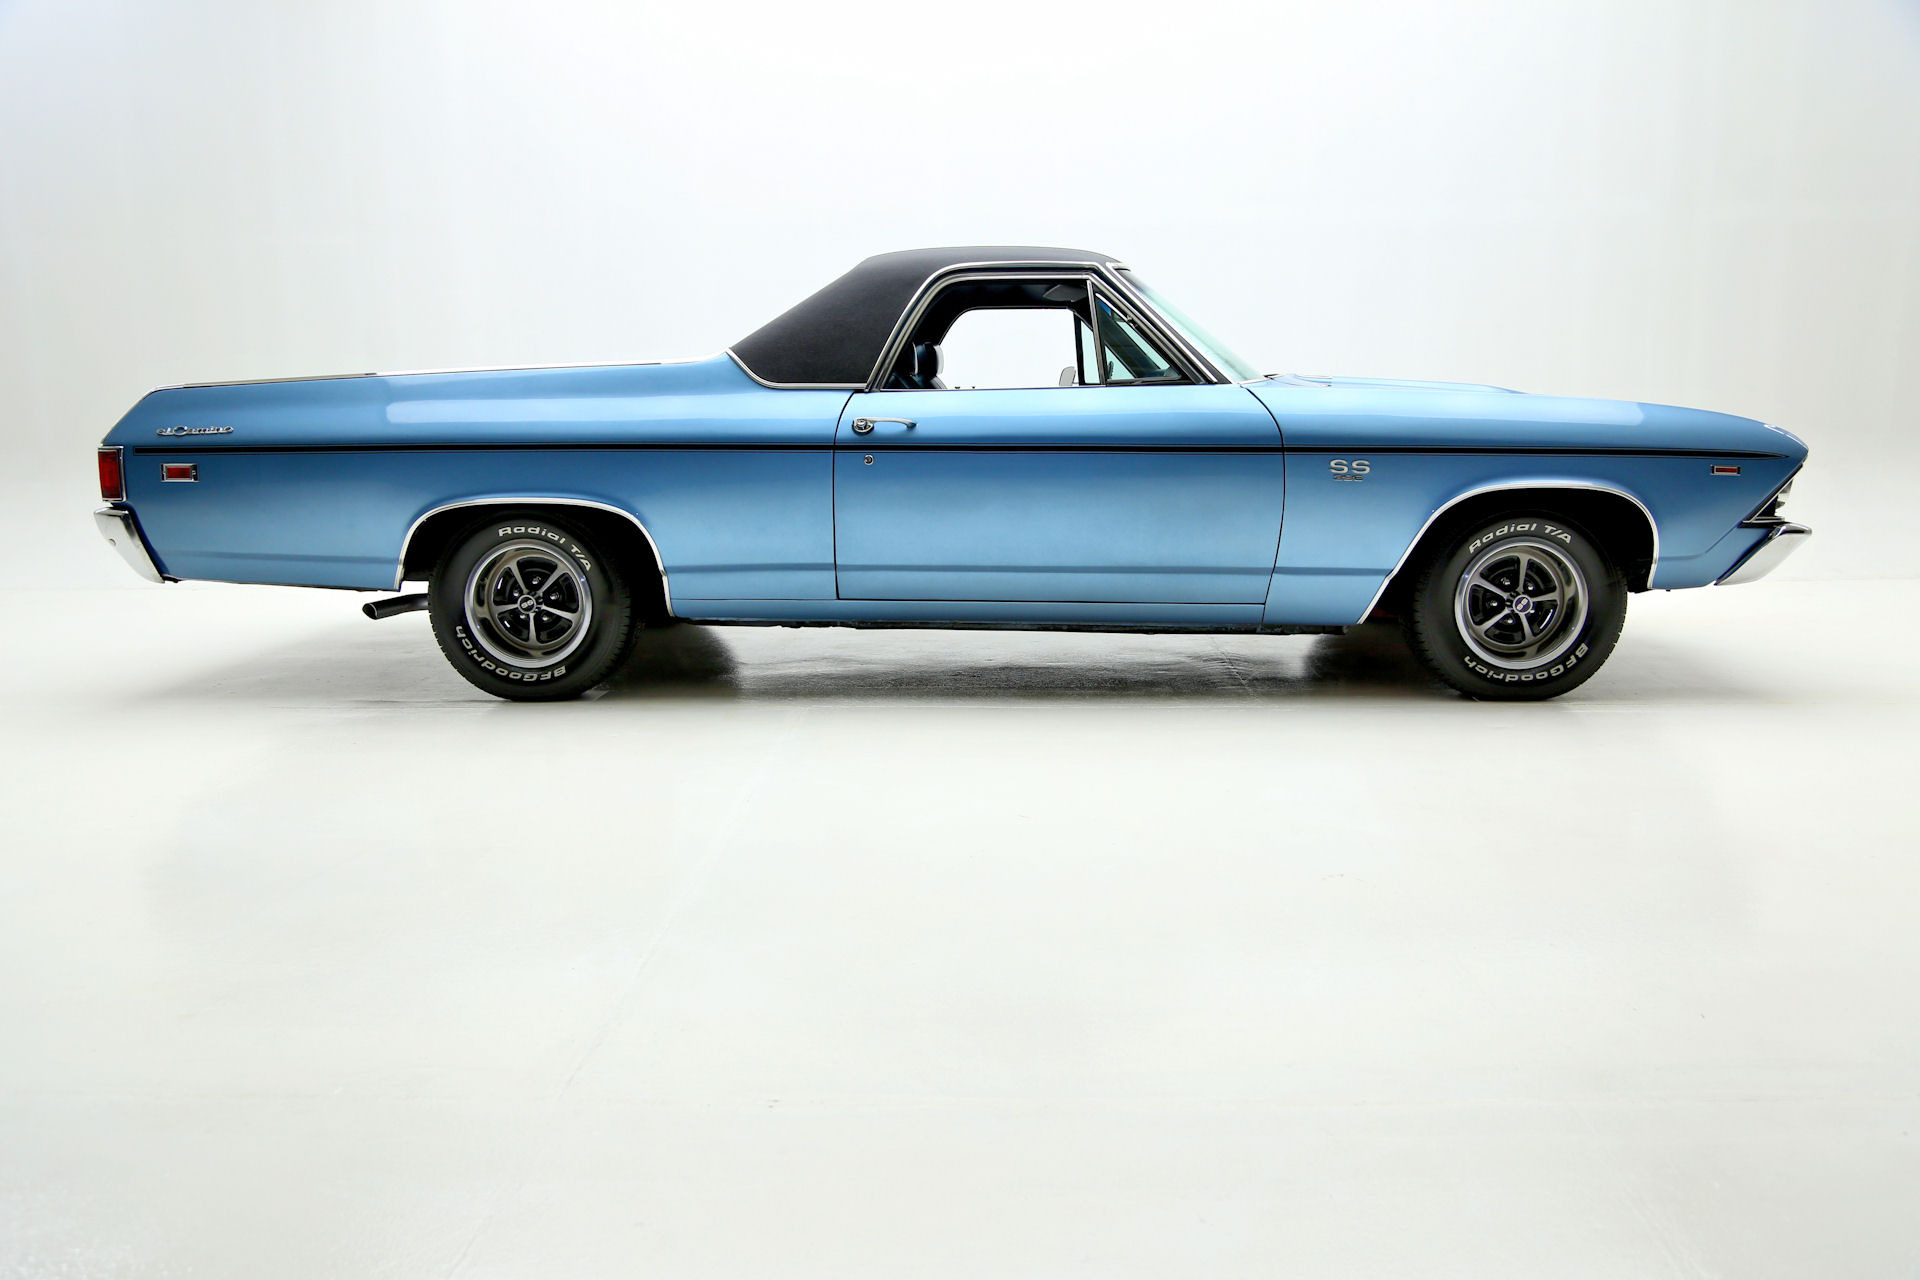 For Sale Used 1969 Chevrolet El Camino 396,4-Speed,AC,PS,PB | American Dream Machines Des Moines IA 50309